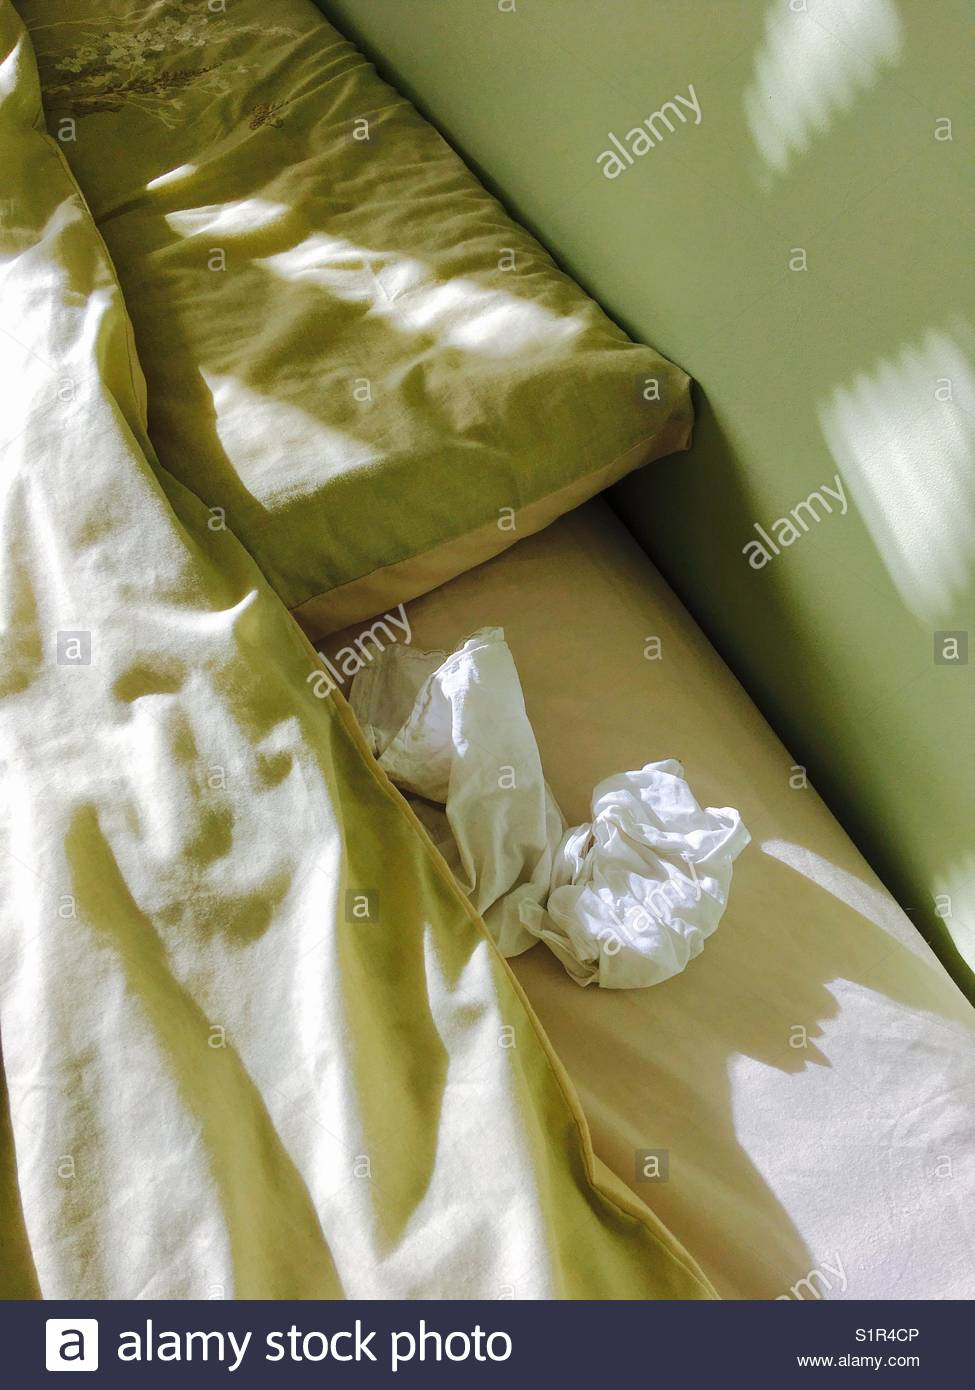 Crumpled pillow and bed sheets with crumpled handkerchief - Stock Image